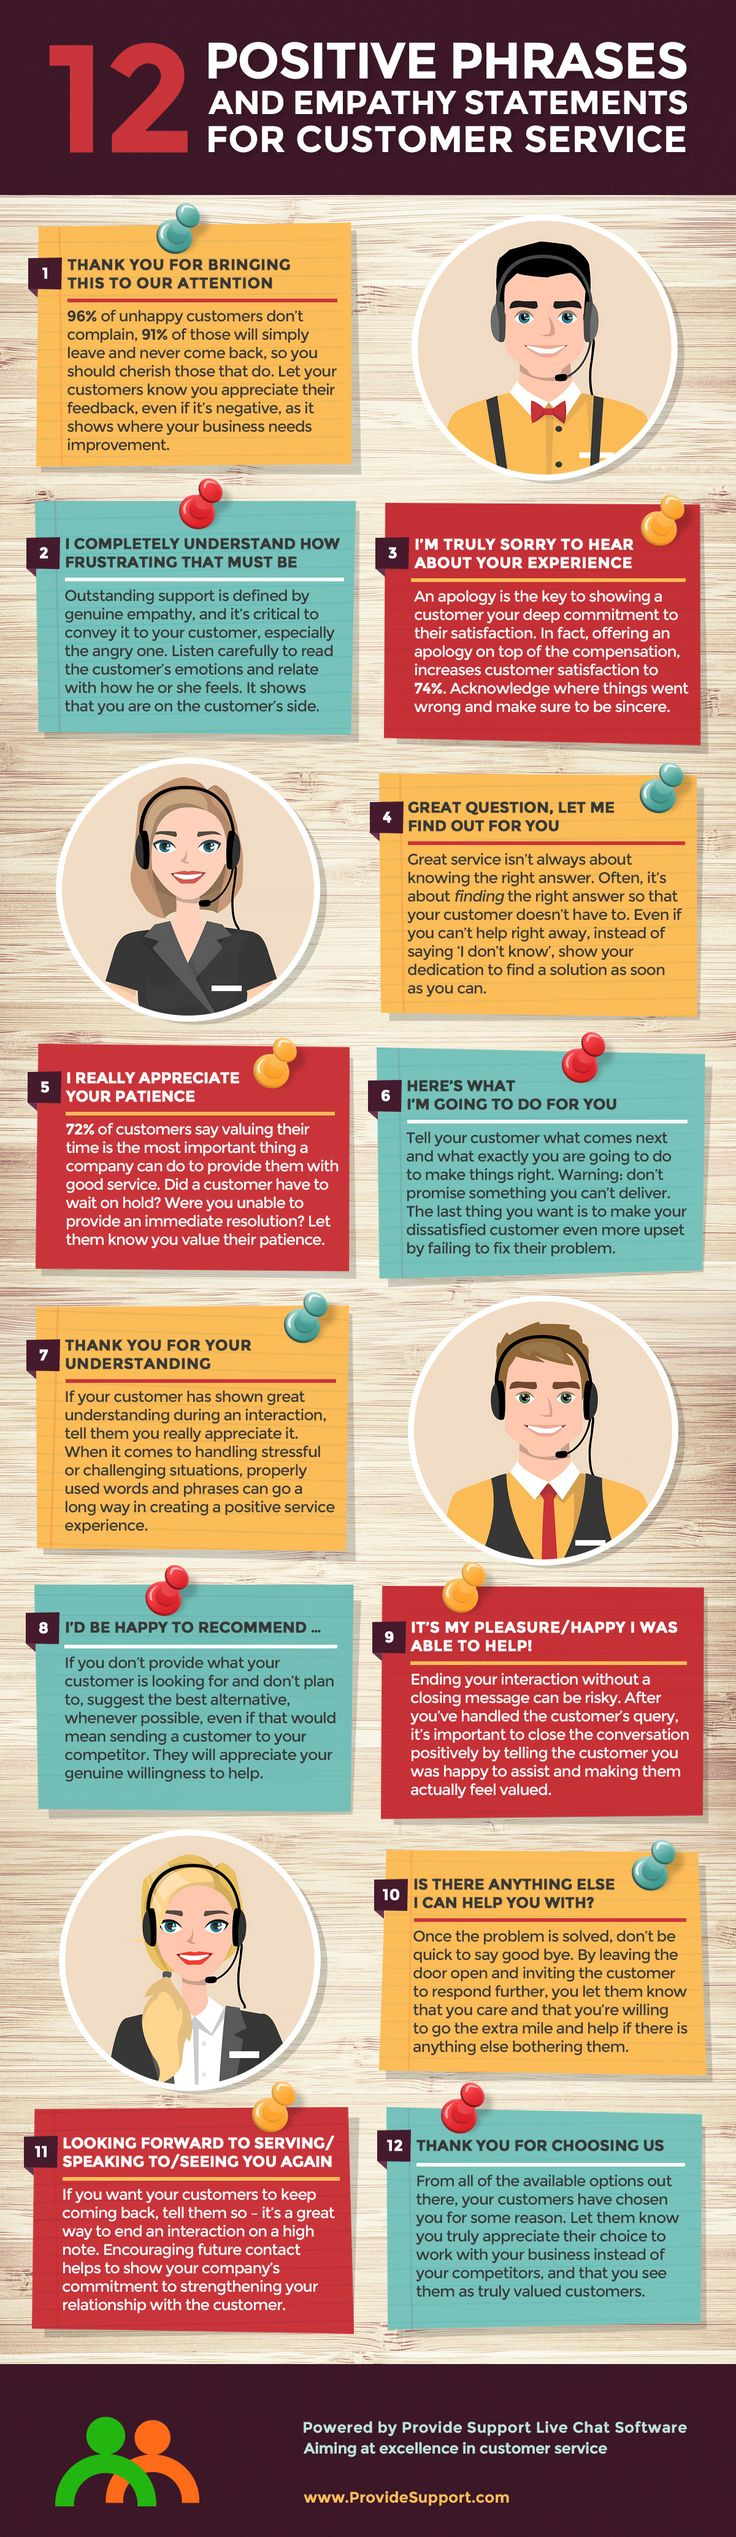 Everyone working in customer service knows that words are incredibly powerful, and some of them can truly either make or break customer service experiences. The infographic offers 12 positive phrases and empathy statements to use for improving every service interaction.